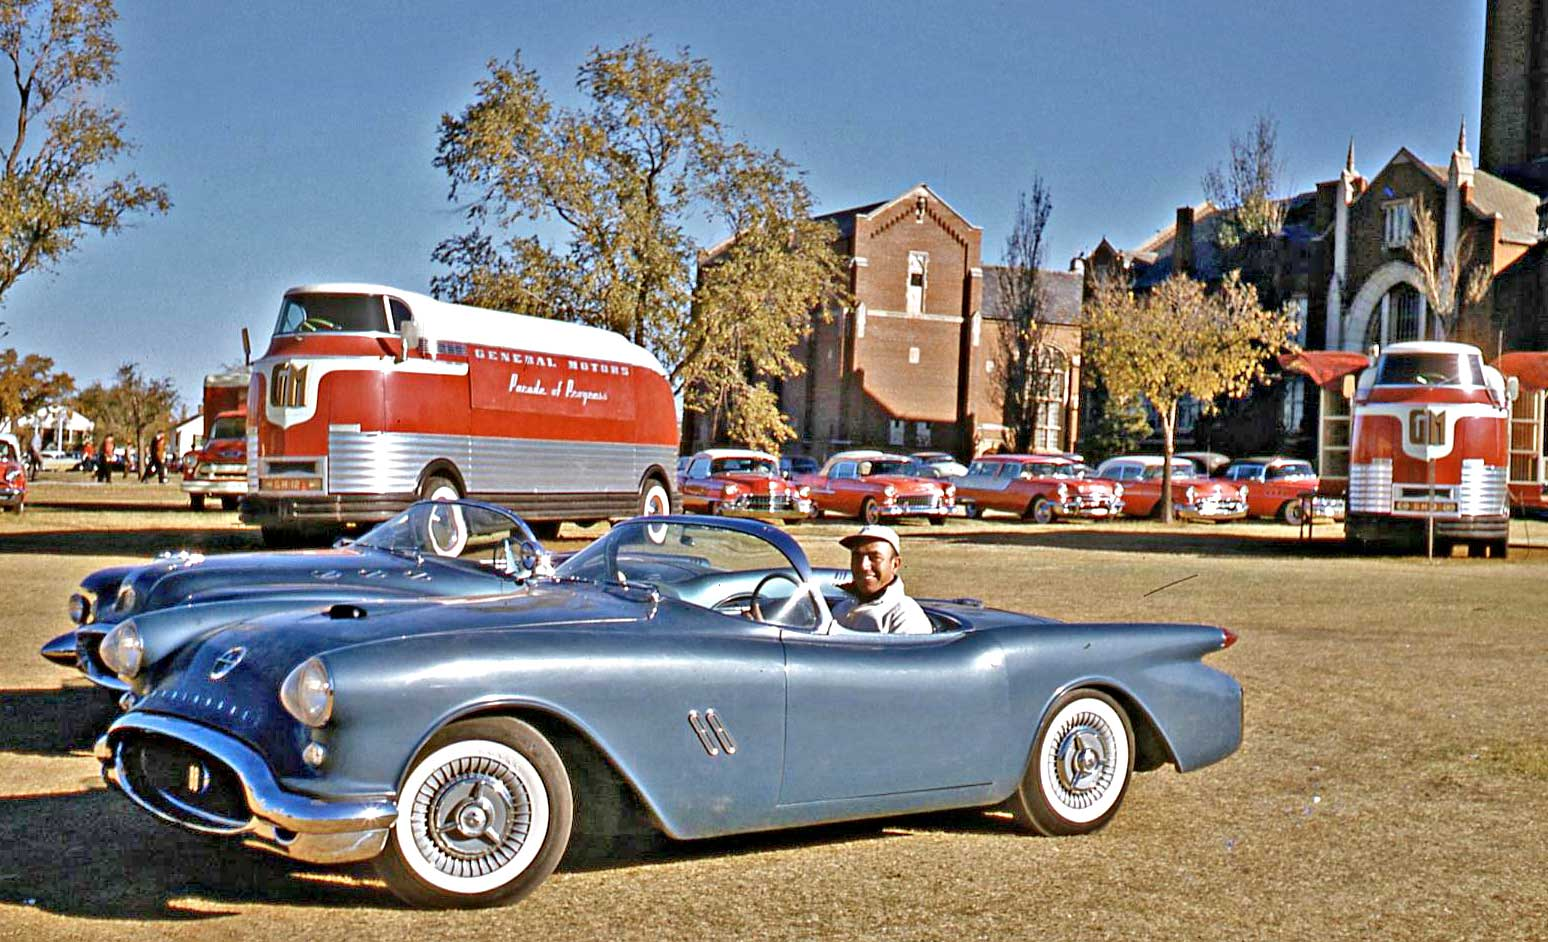 1950s Vintage Cars | The Old Motor